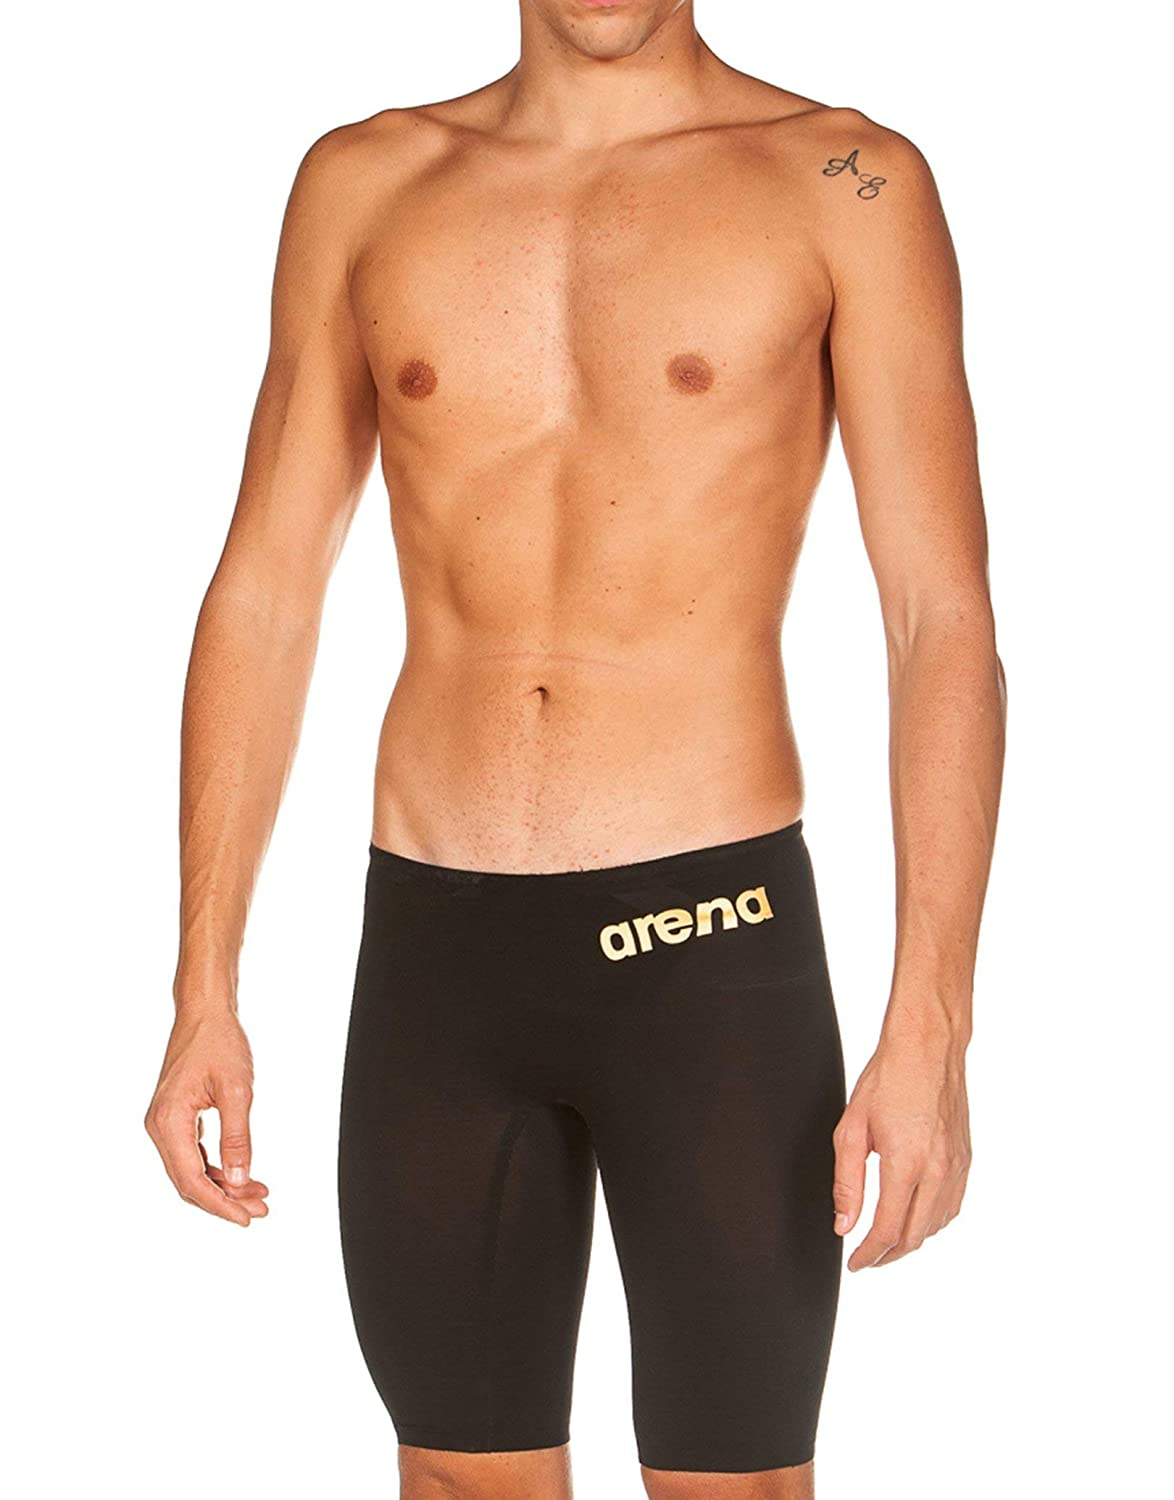 Arena Carbon Air2 Jammer